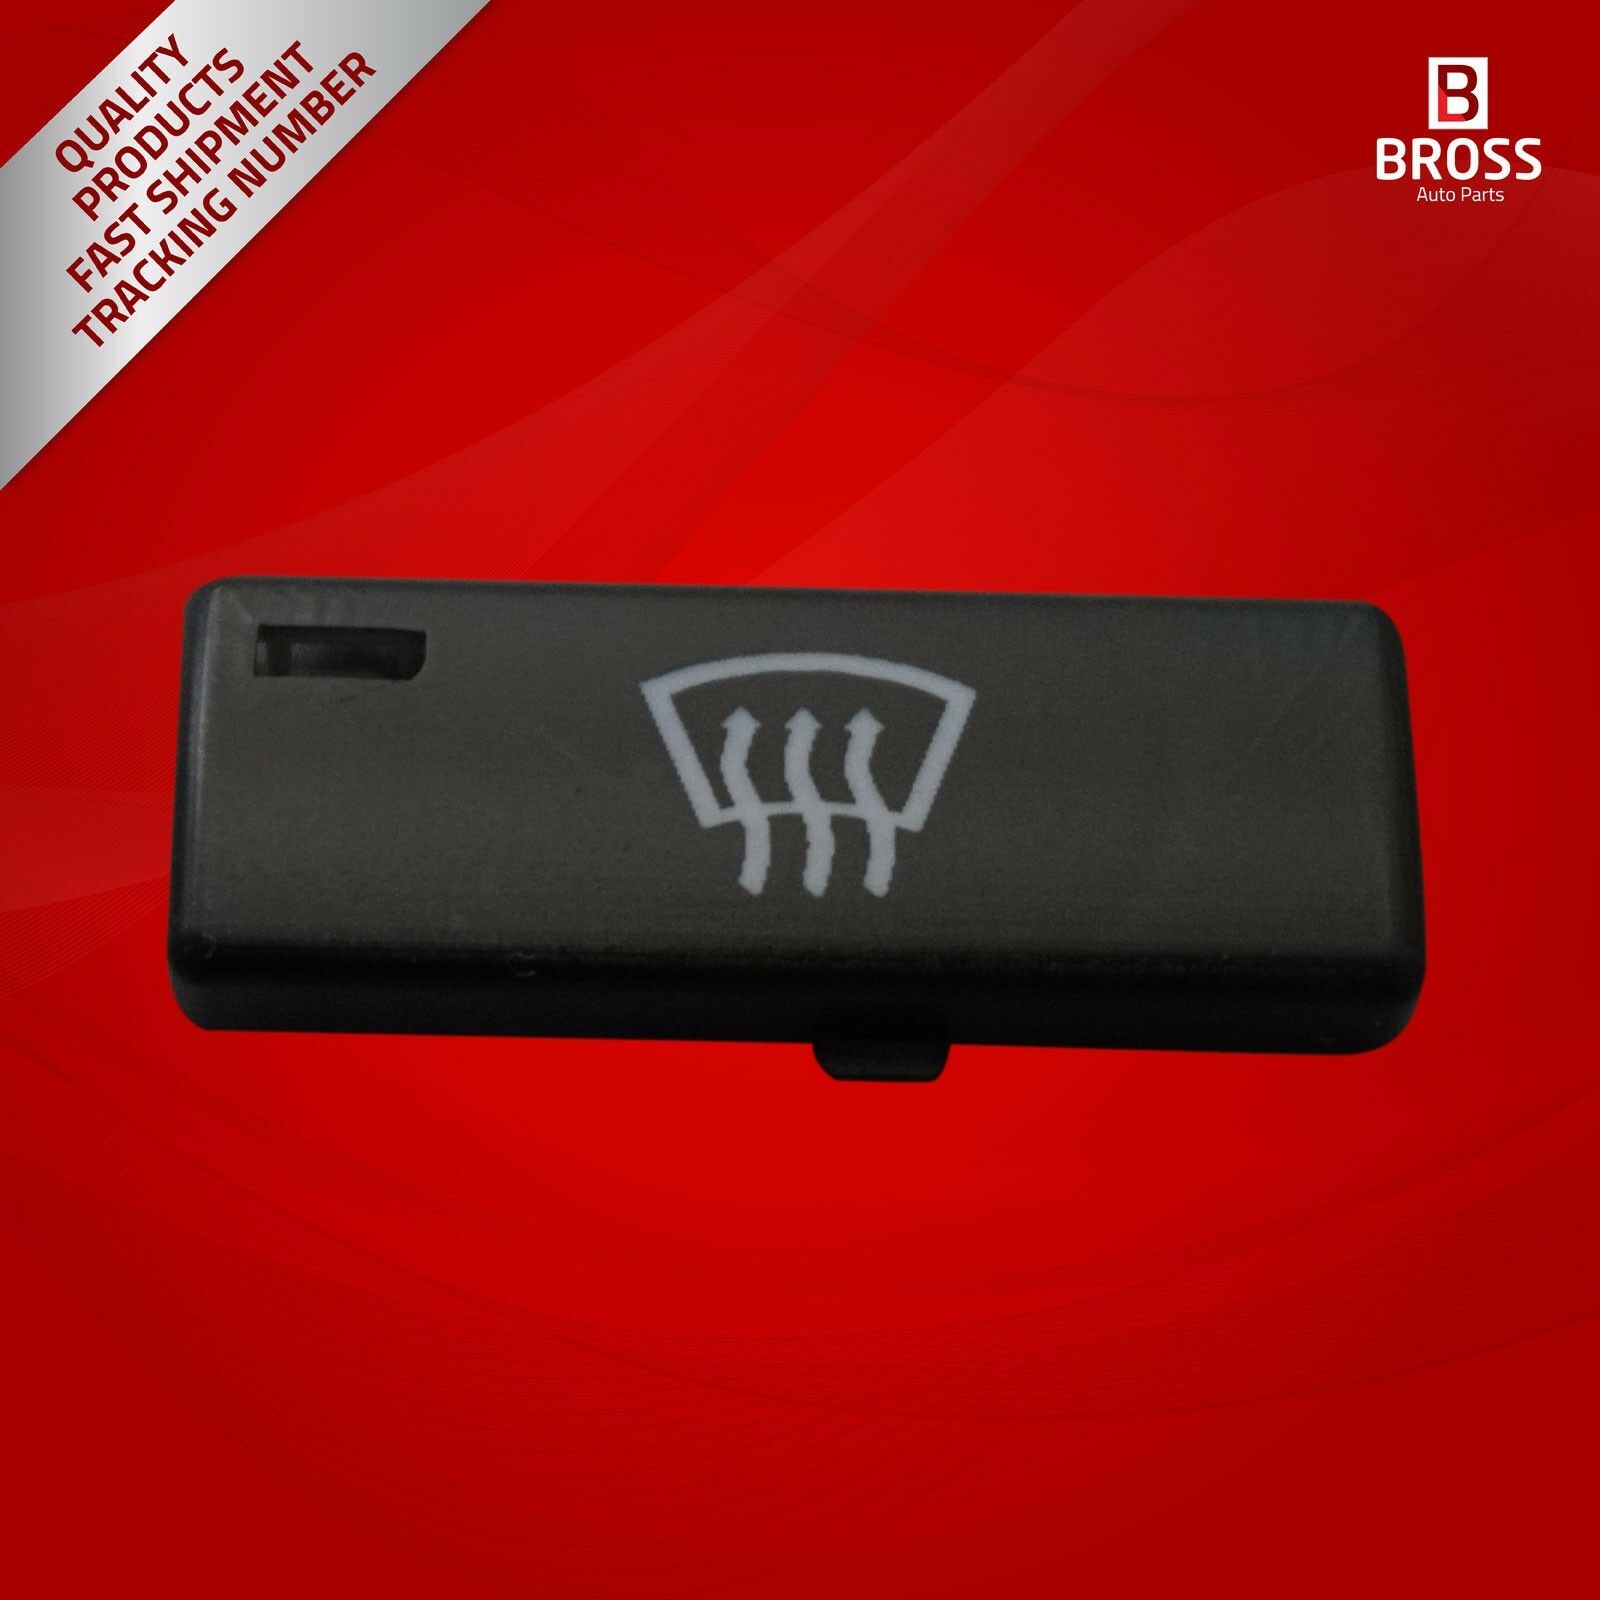 BDP88-7 1 Piece Heater Climate Control Air Conditioning Switch Button Cover #7 For 5 Series X5 E53 2000- 2007 E39 1995-2003